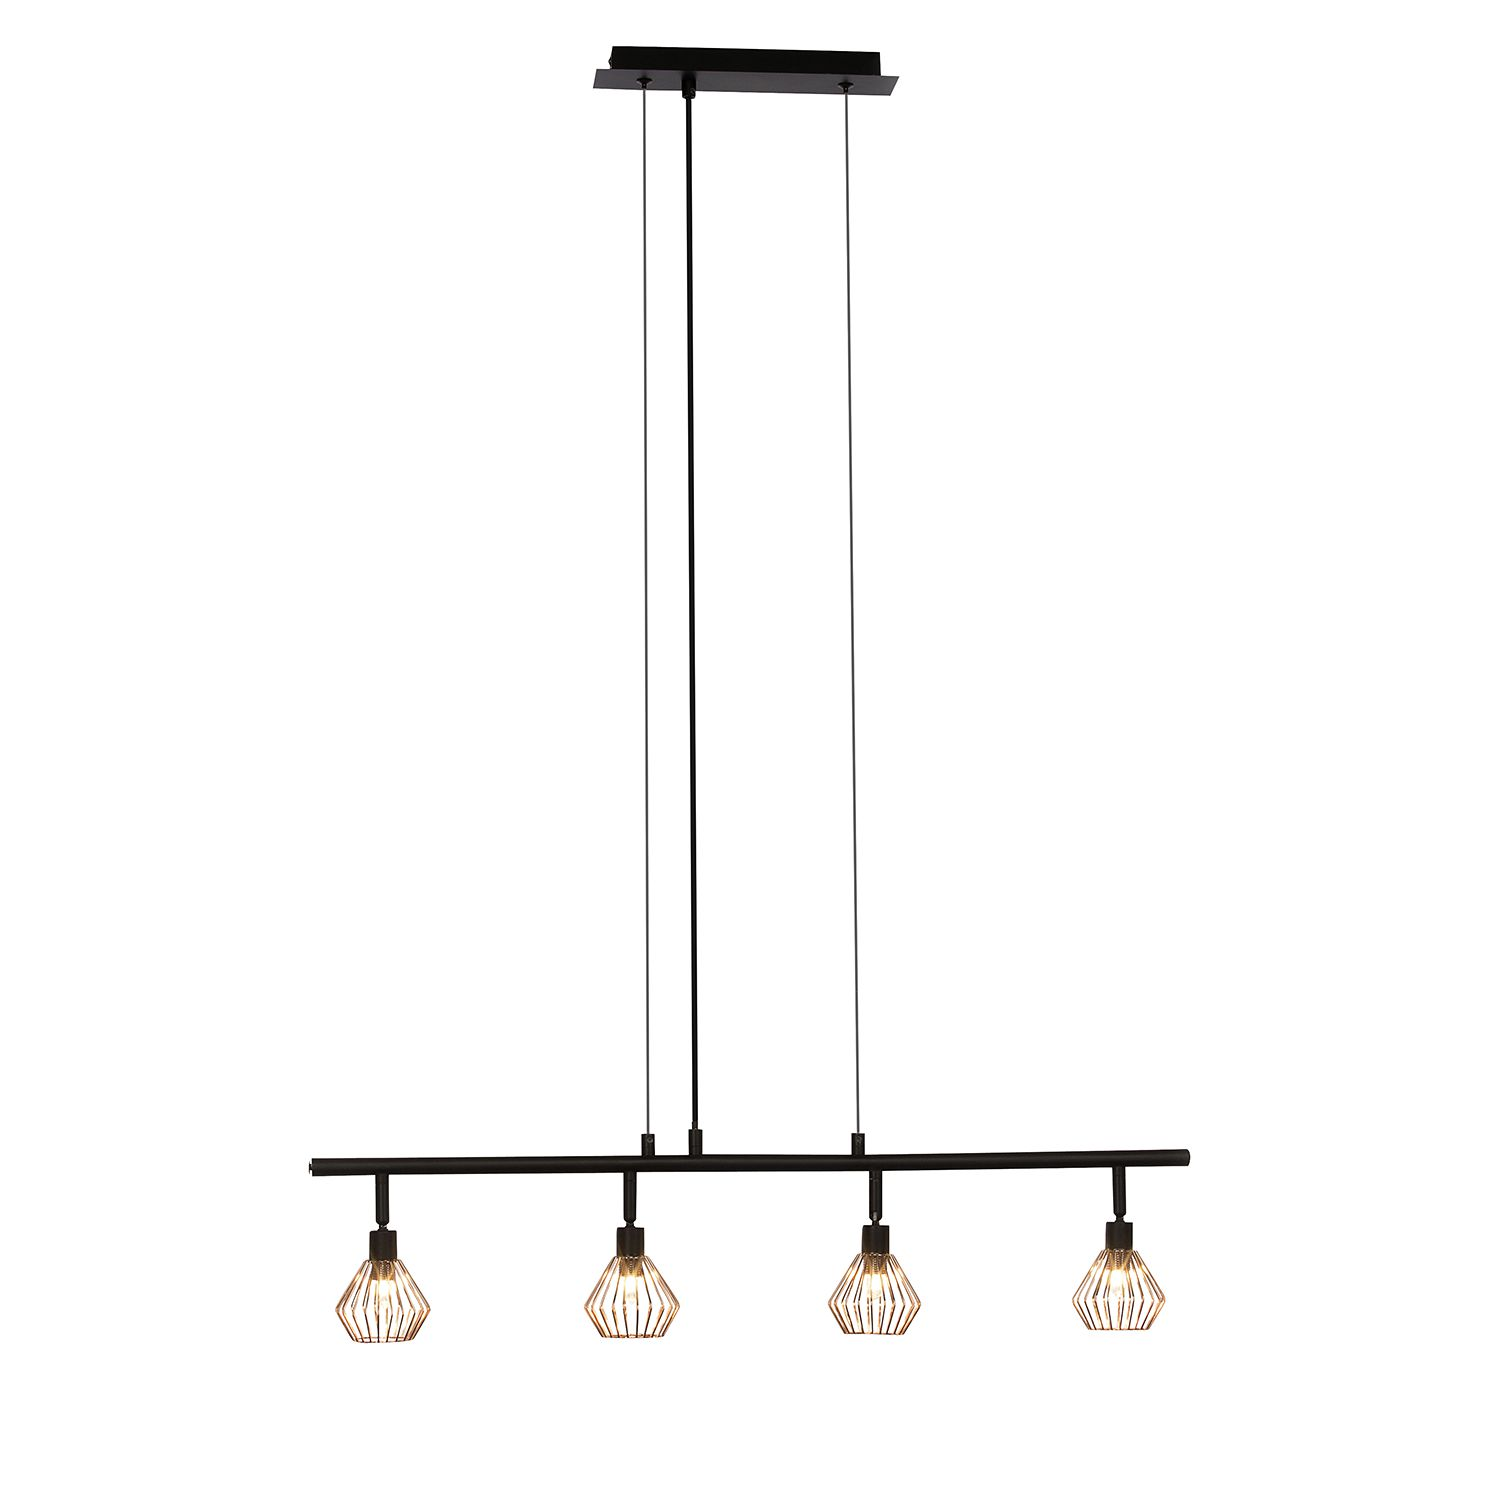 Suspension Dalma